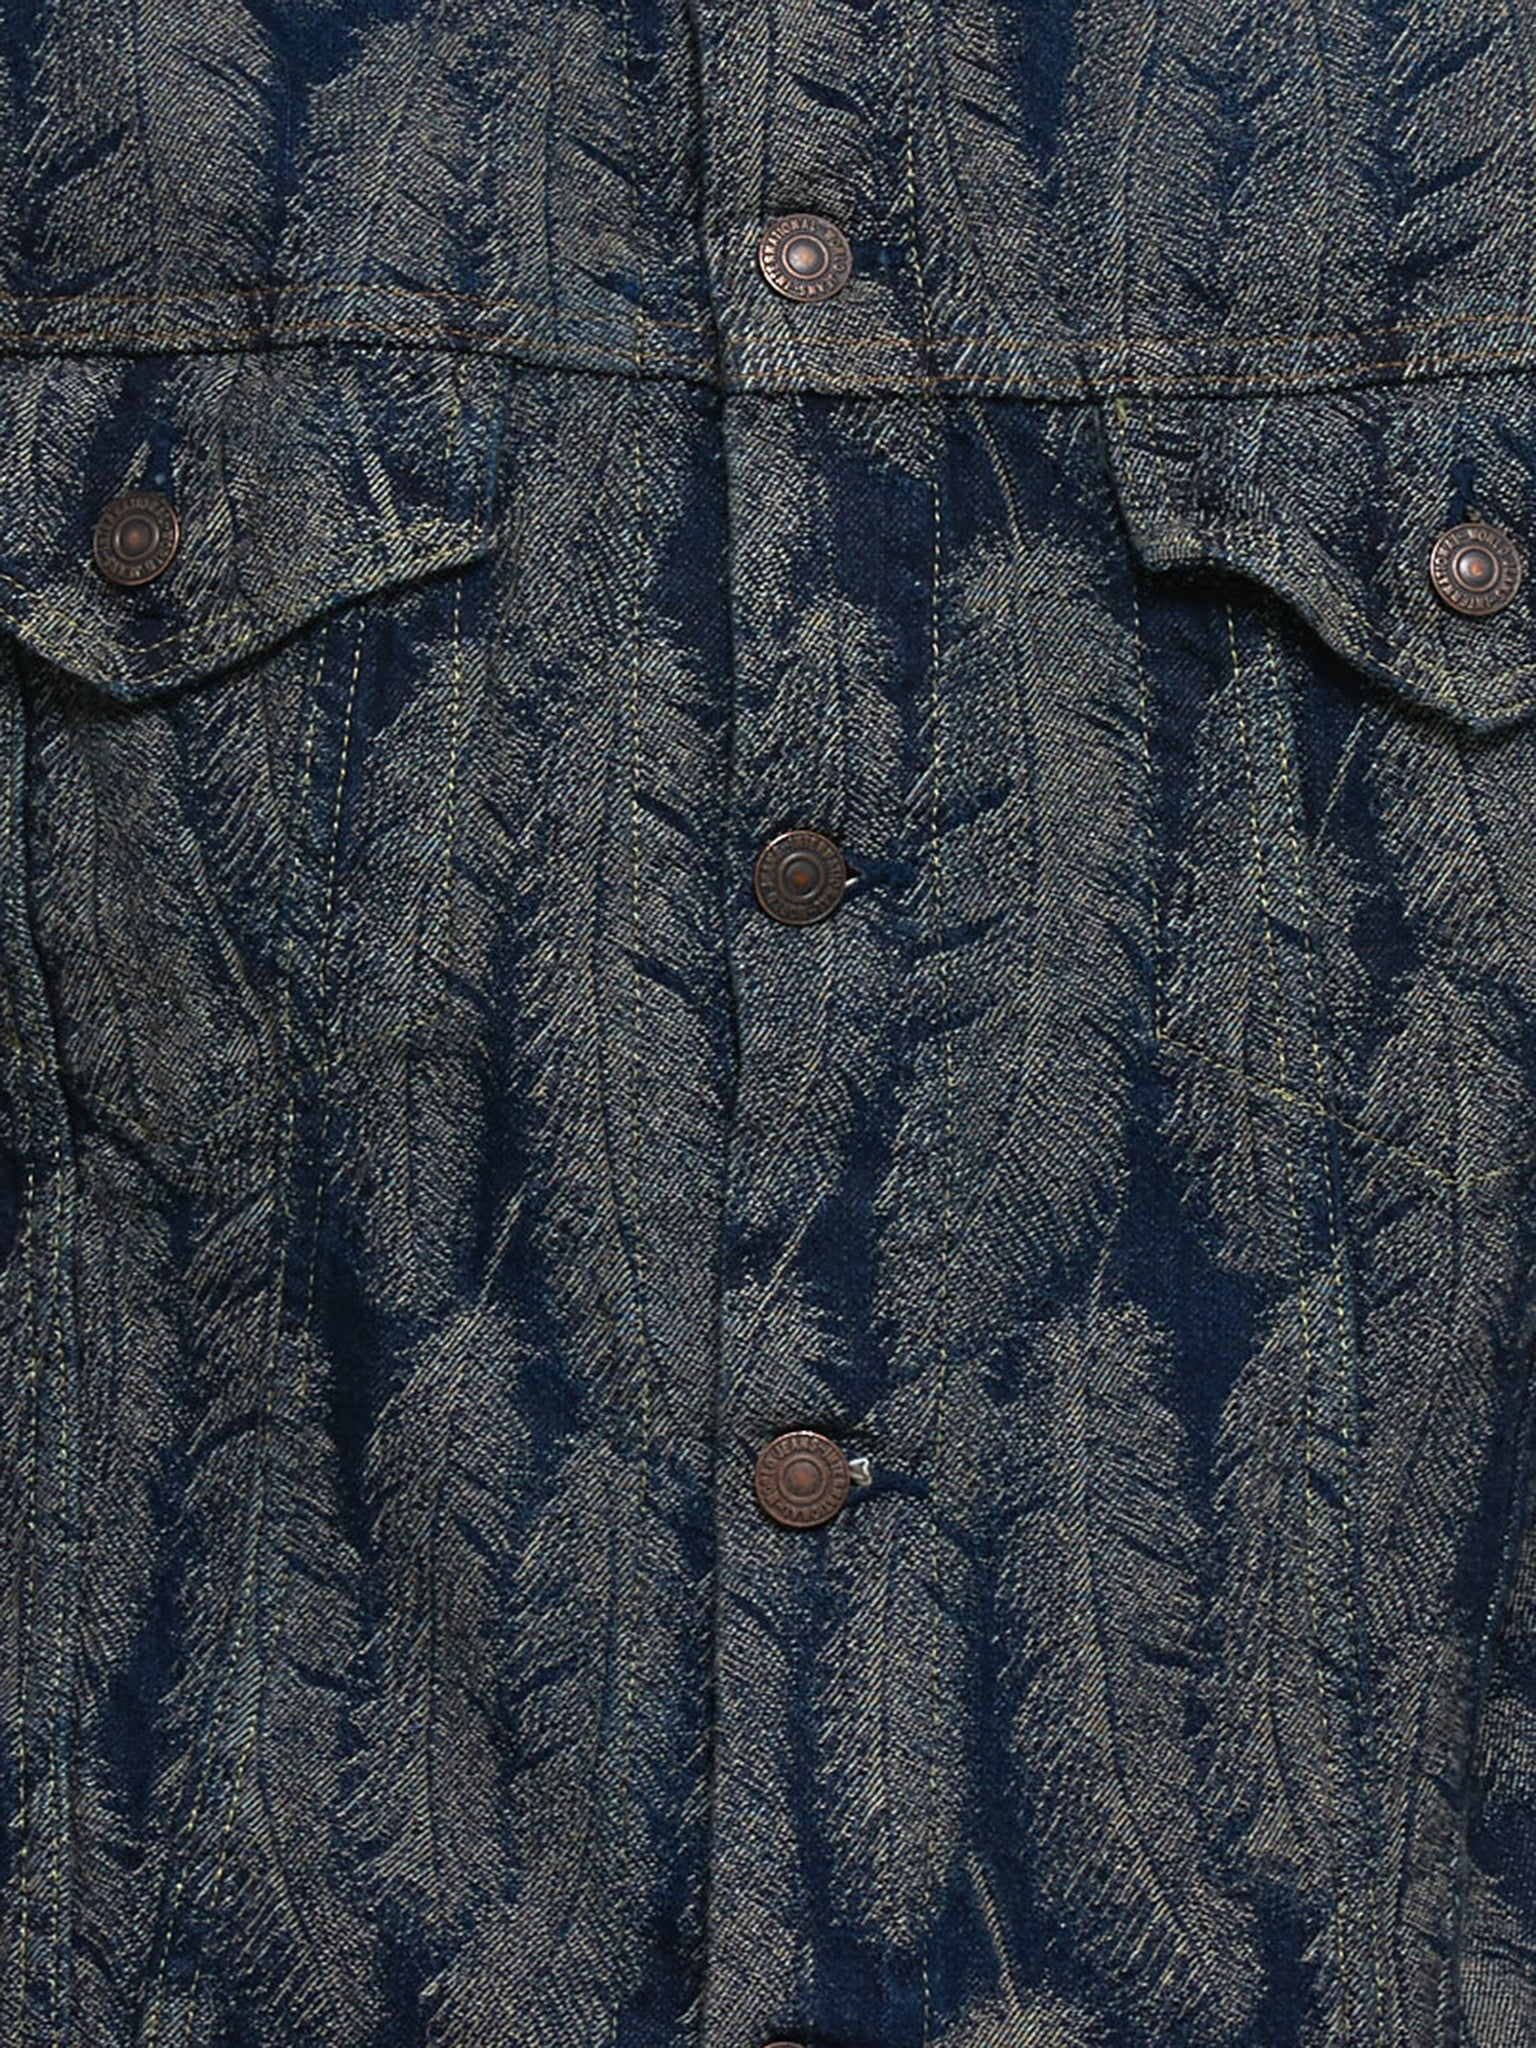 Jacquard Weave Denim Jacket (EK-981-INDIGO)